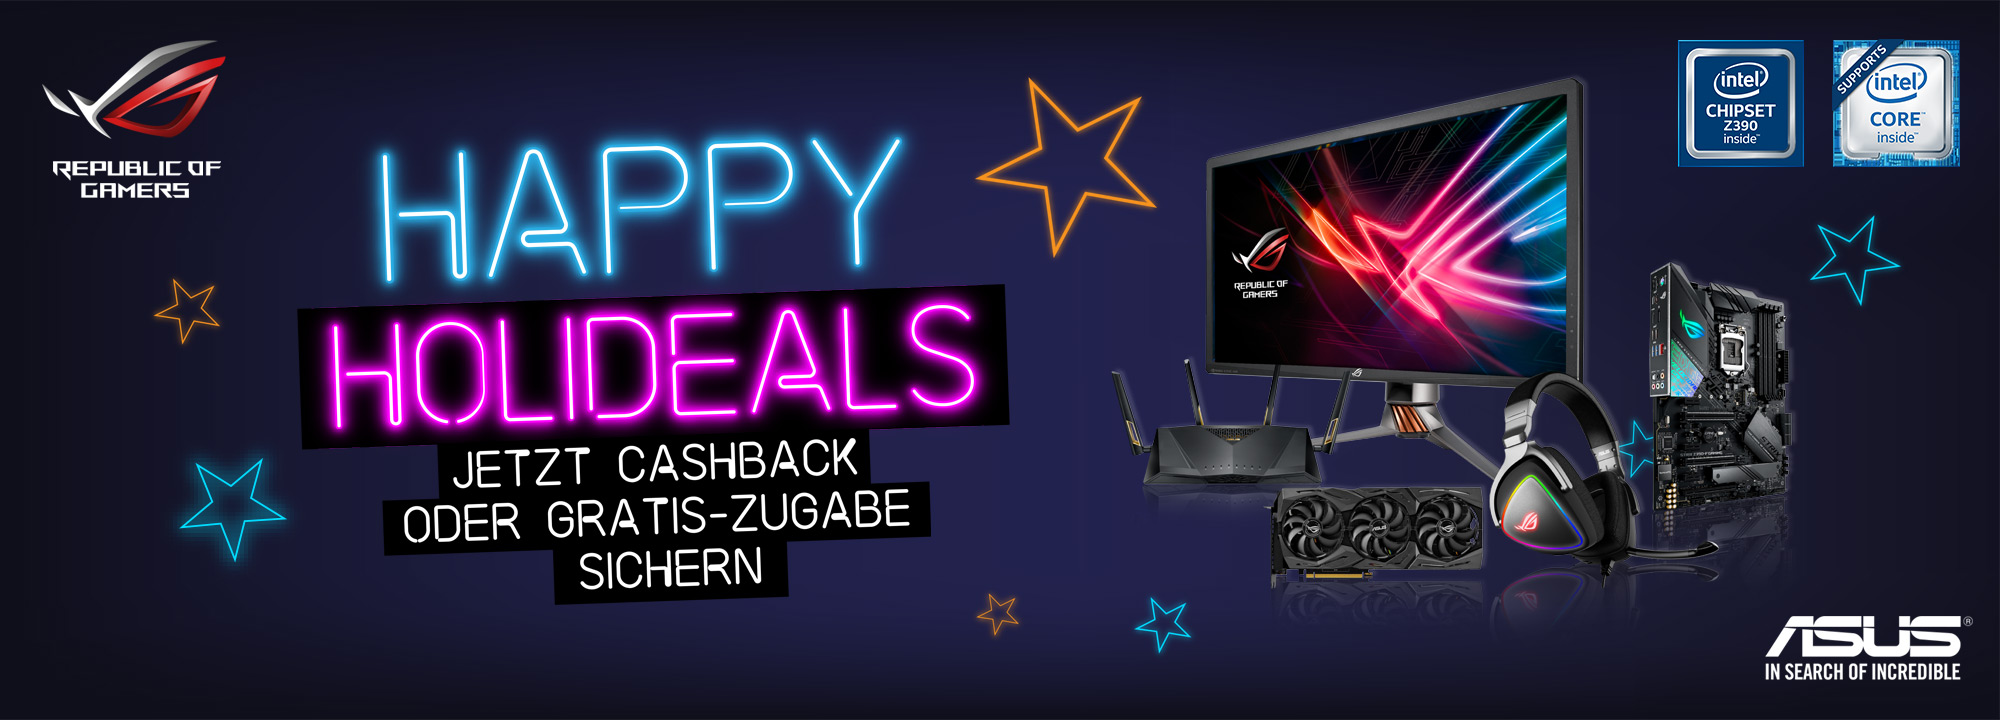 ASUS Happy Holideals 2018